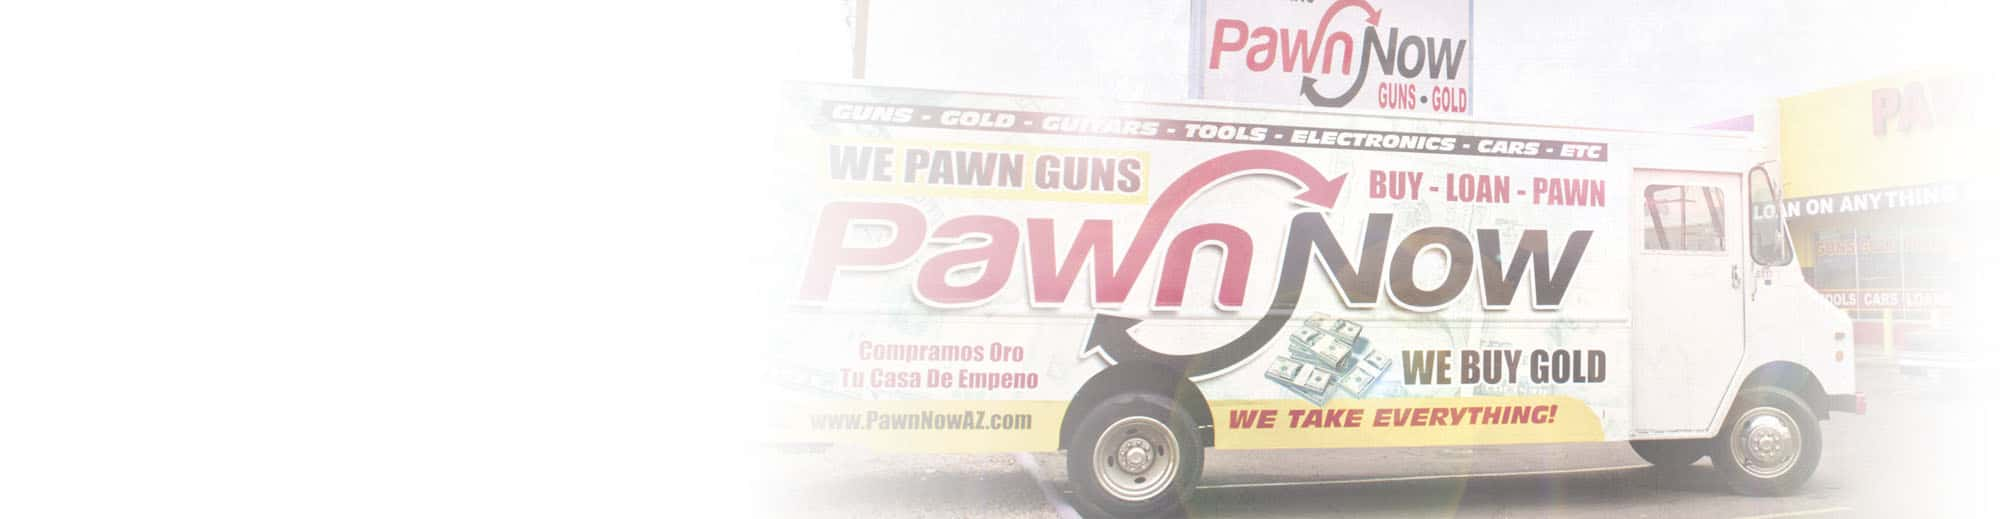 Pawn Now in Arizona, With Pawn Shops in Mesa, Scottsdale, Phoenix Pawn shops and Chandler